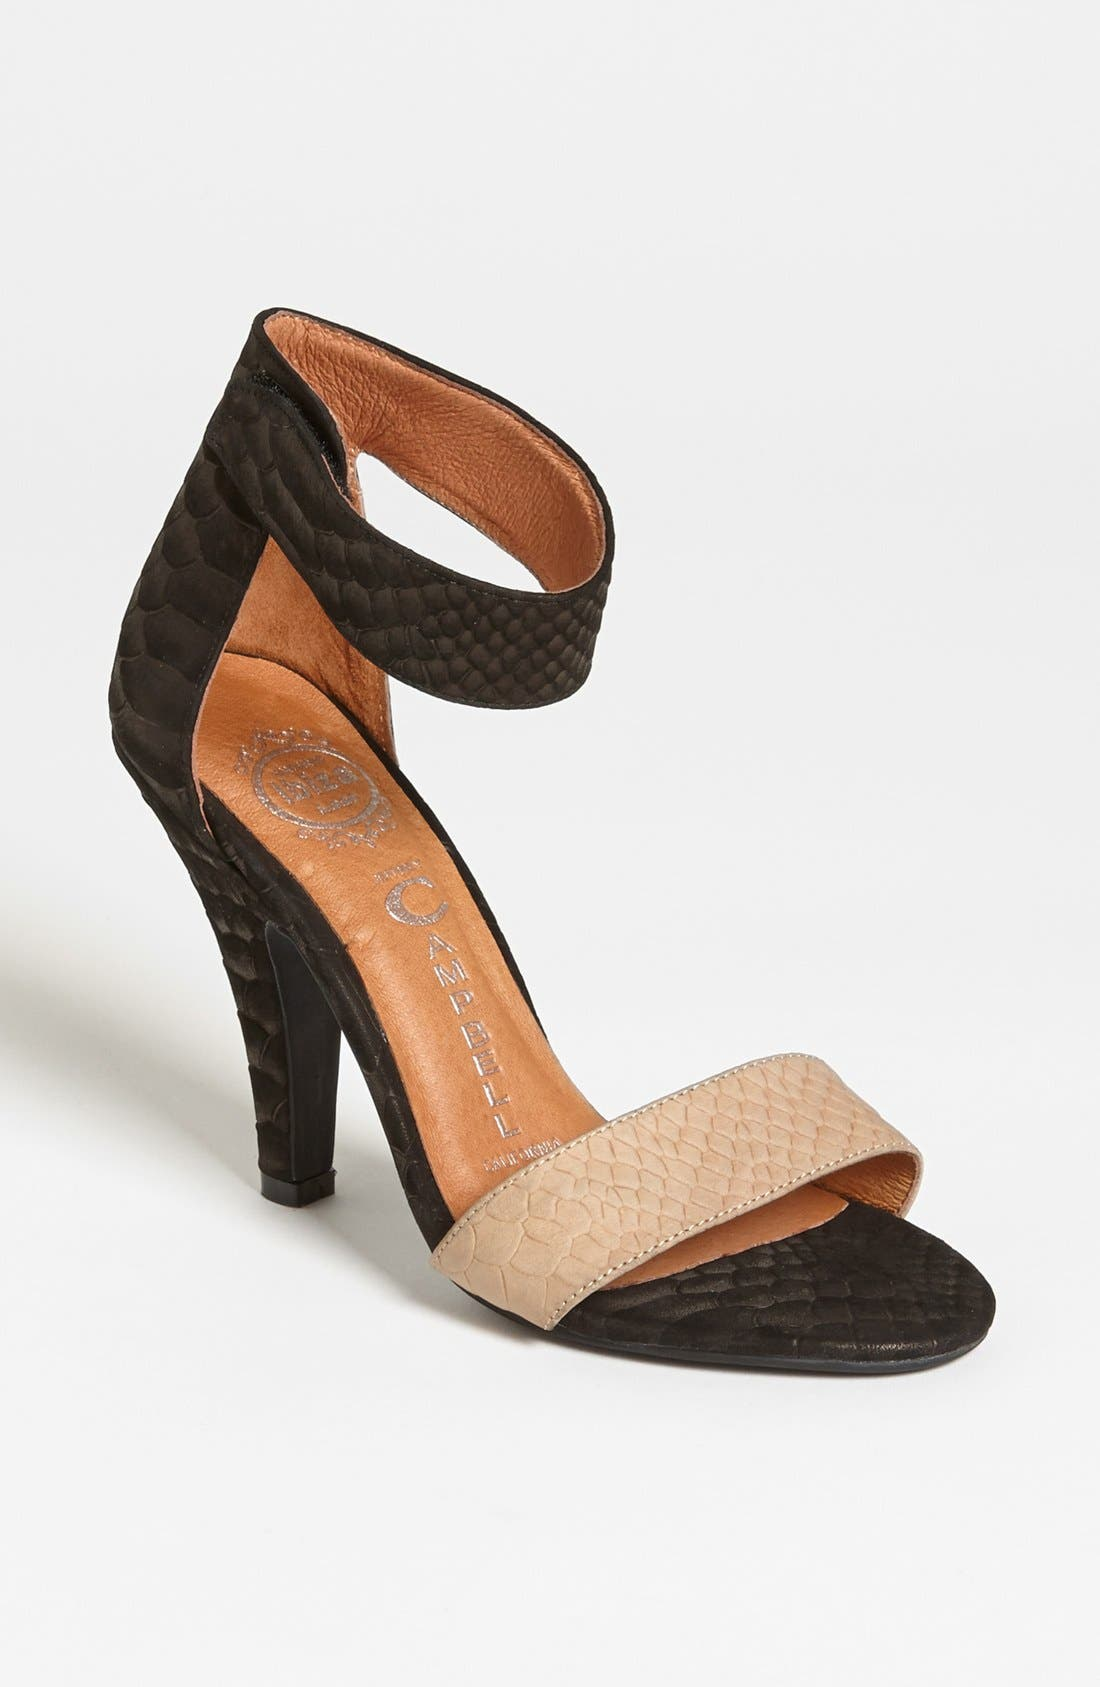 Alternate Image 1 Selected - Jeffrey Campbell 'Foxtrot' Sandal